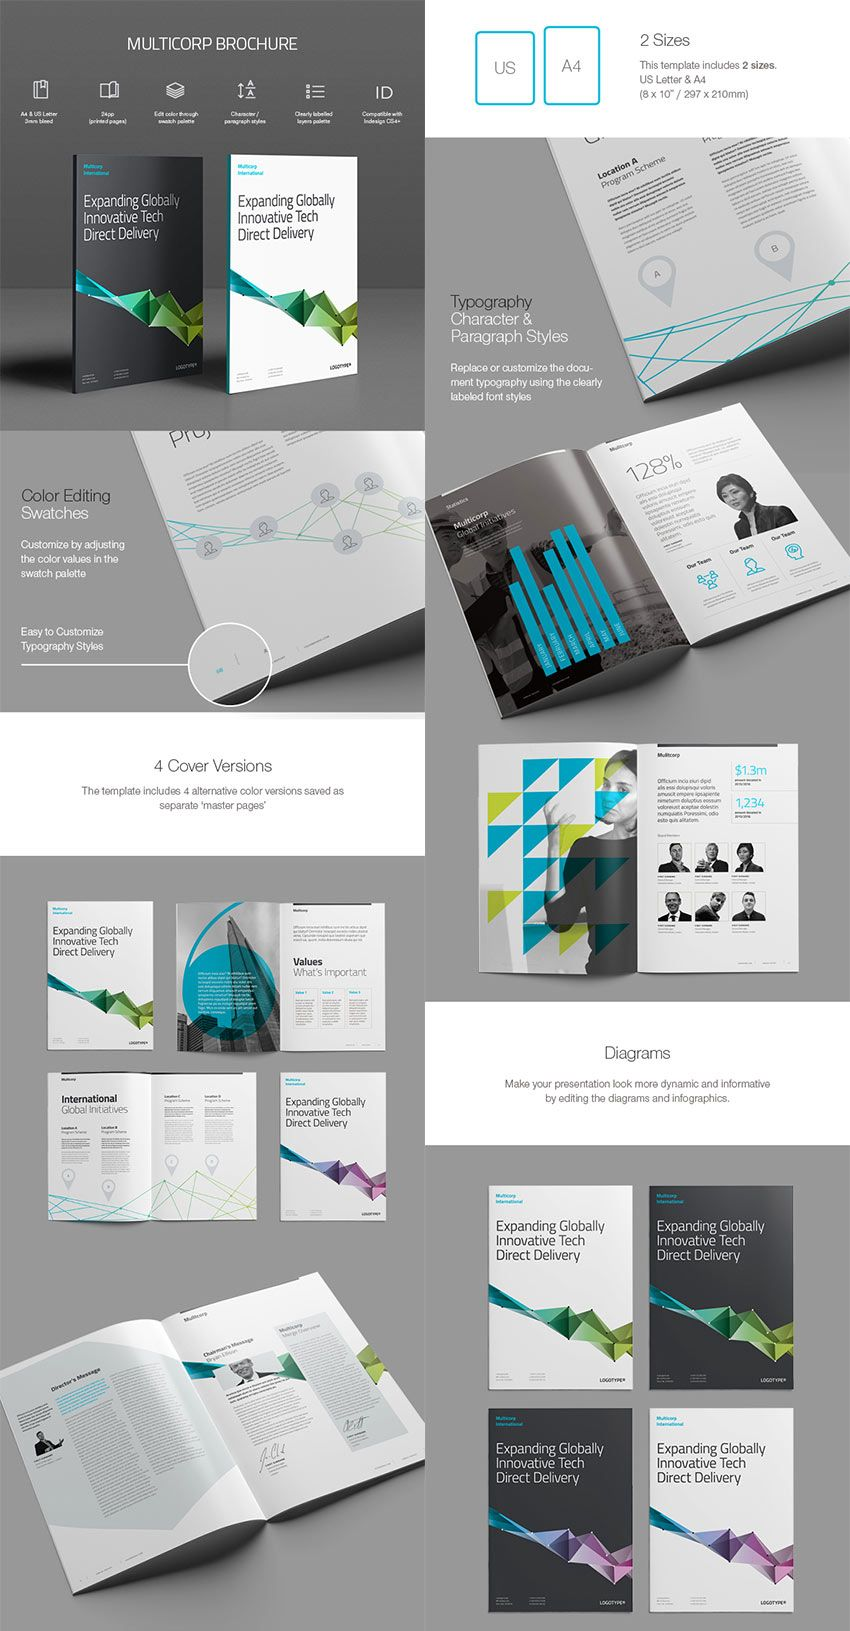 20 best indesign brochure templates for creative business 20 best indesign brochure templates for creative business marketing maxwellsz